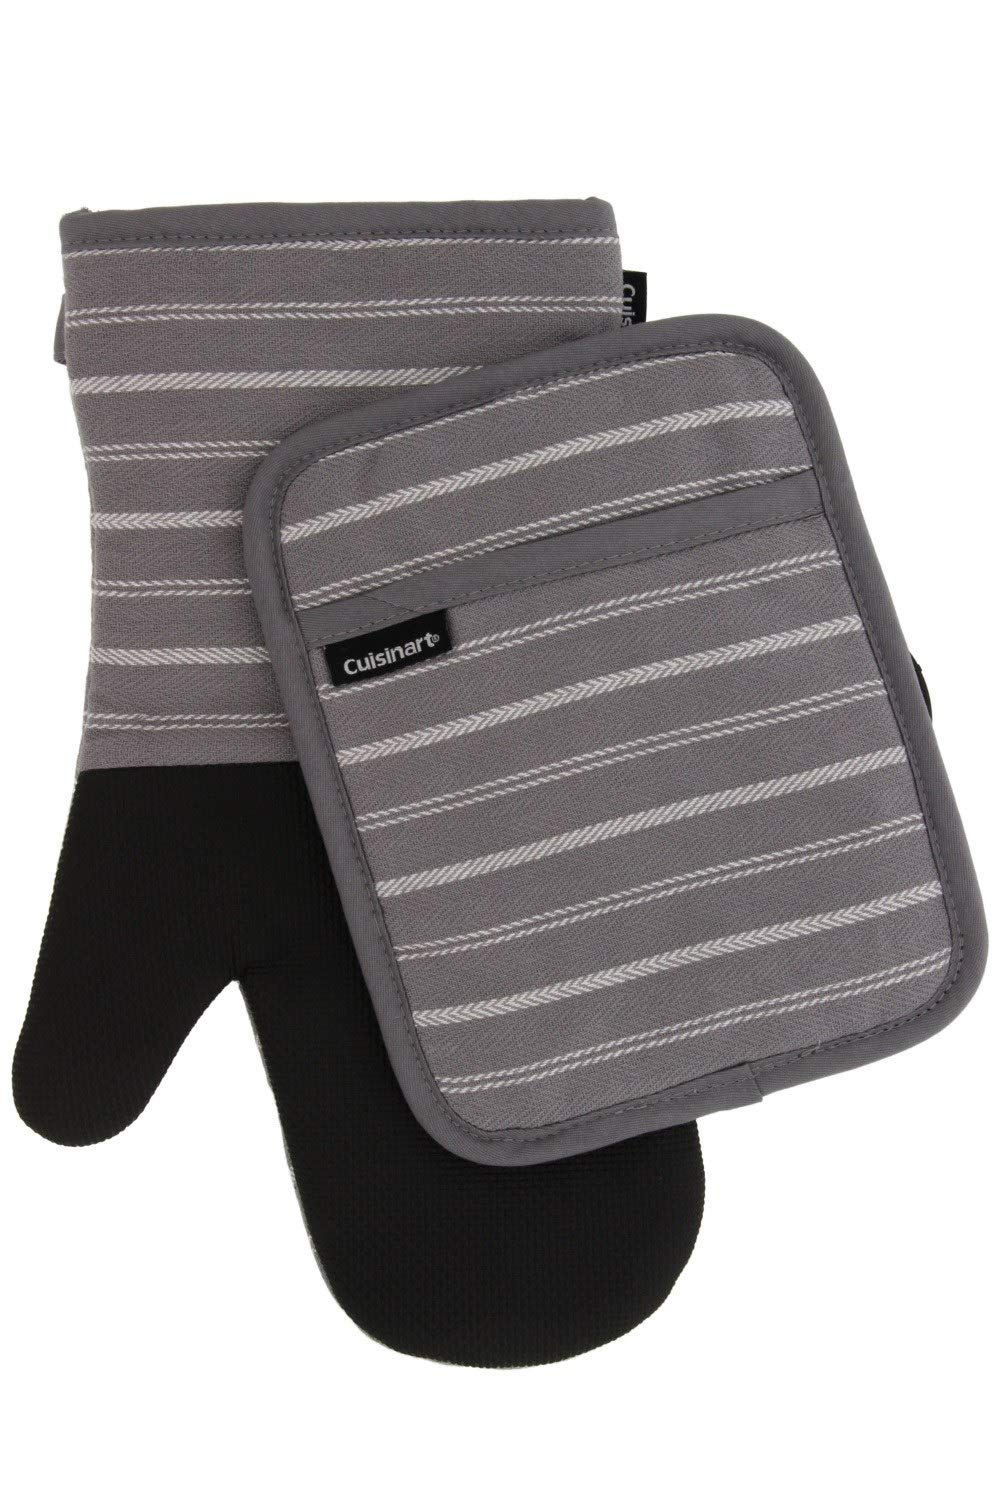 Cuisinart Kitchen Oven Mitt/Glove & Rectangle Potholder with Pocket Set w/Neoprene for Easy Gripping, Heat Resistant up to 500 Degrees F, Twill Stripe- Titanium Grey